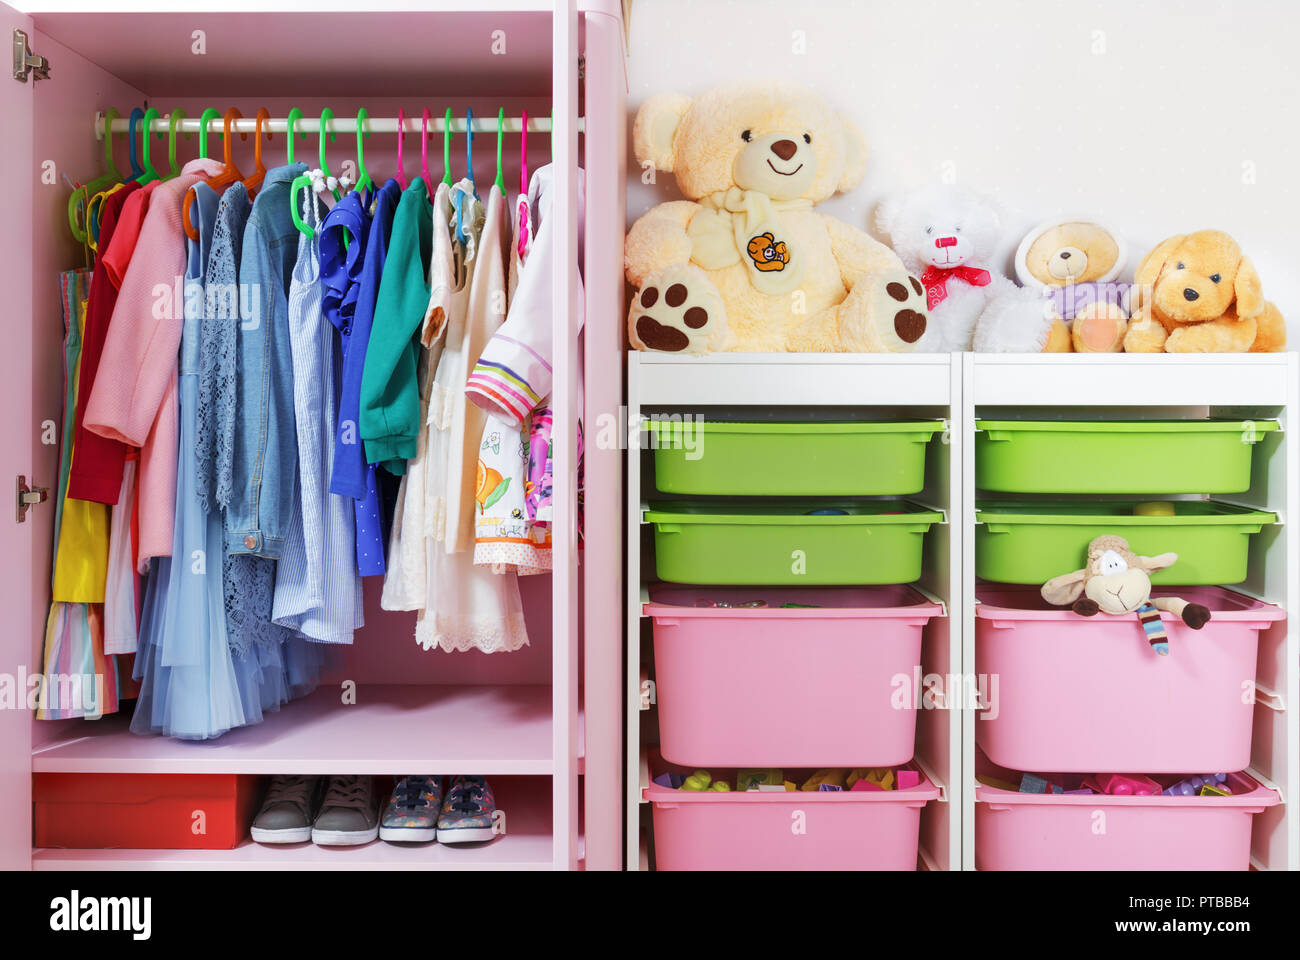 Wardrobe in the children's room. Storage system and storage for the concept of children's things and toys. Stock Photo